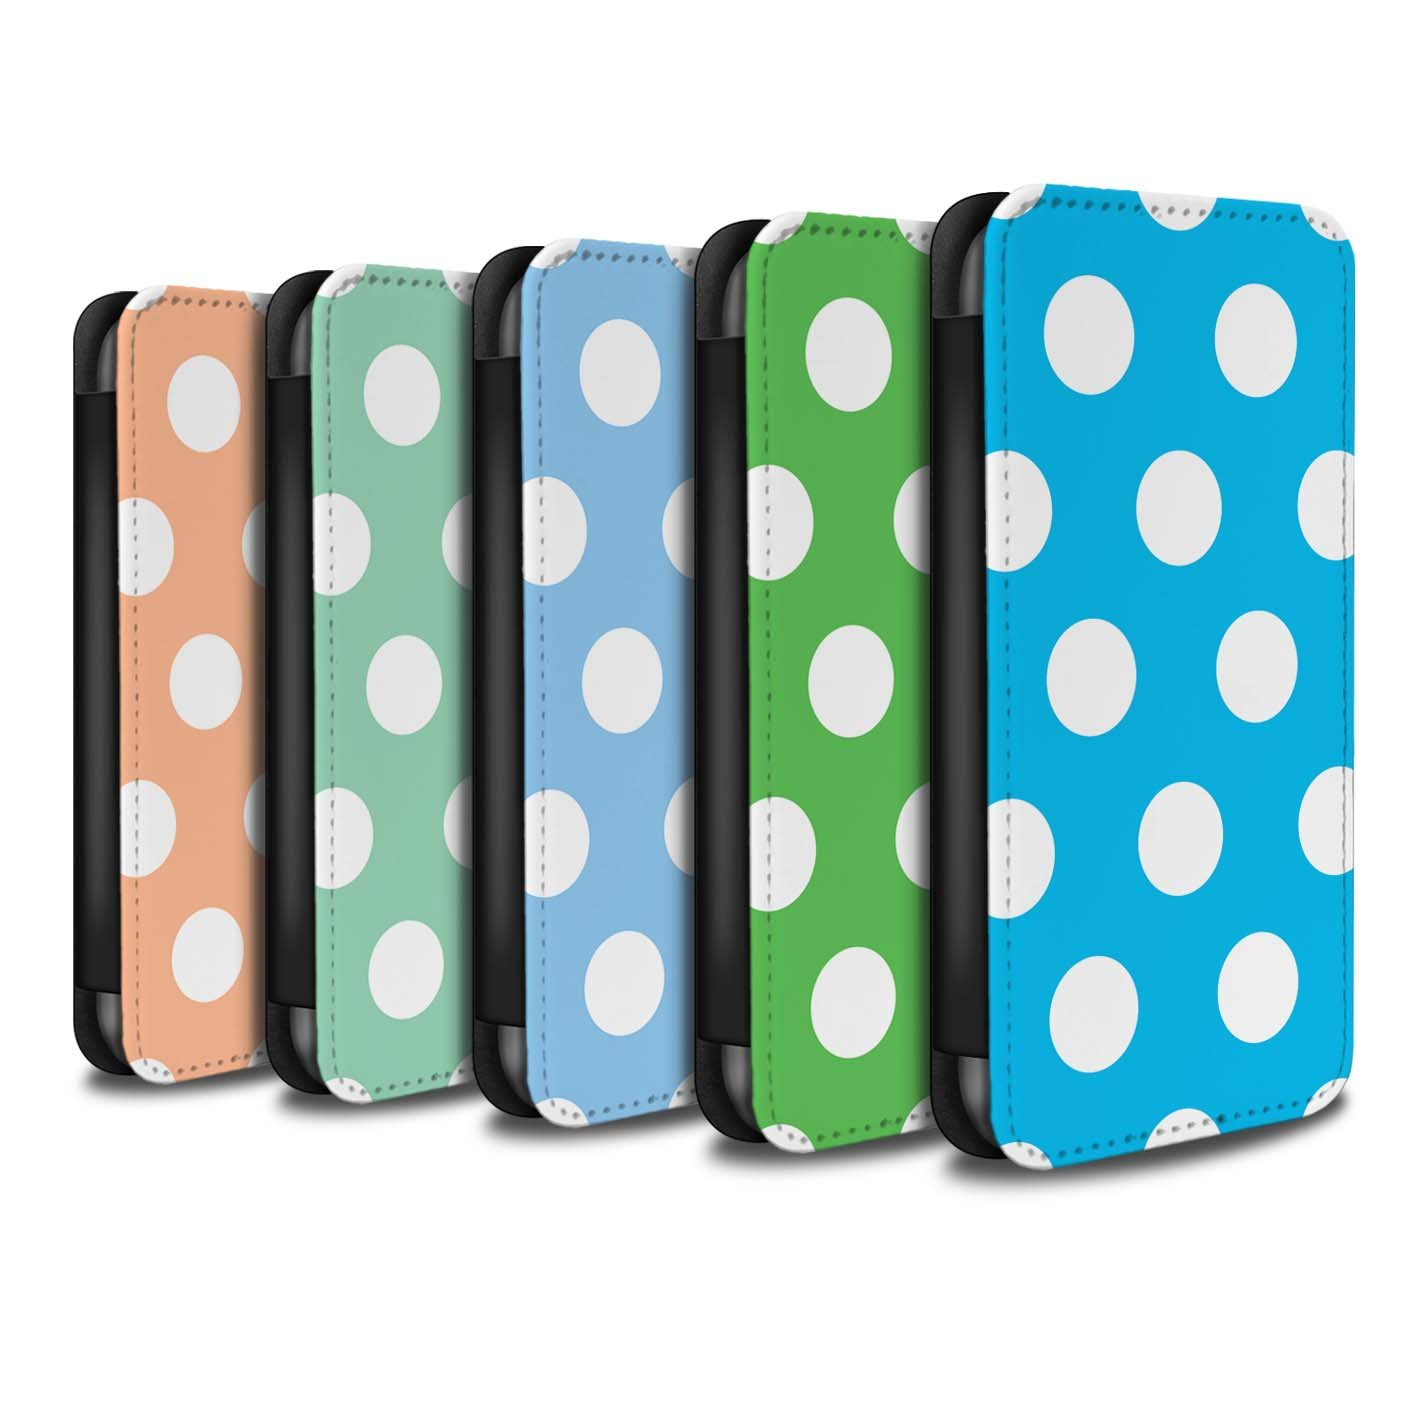 STUFF4 PU Leather Wallet Flip Case/Cover for Apple iPhone X/10 / Pack 10pcs Design / Polka Dot Pattern Collection